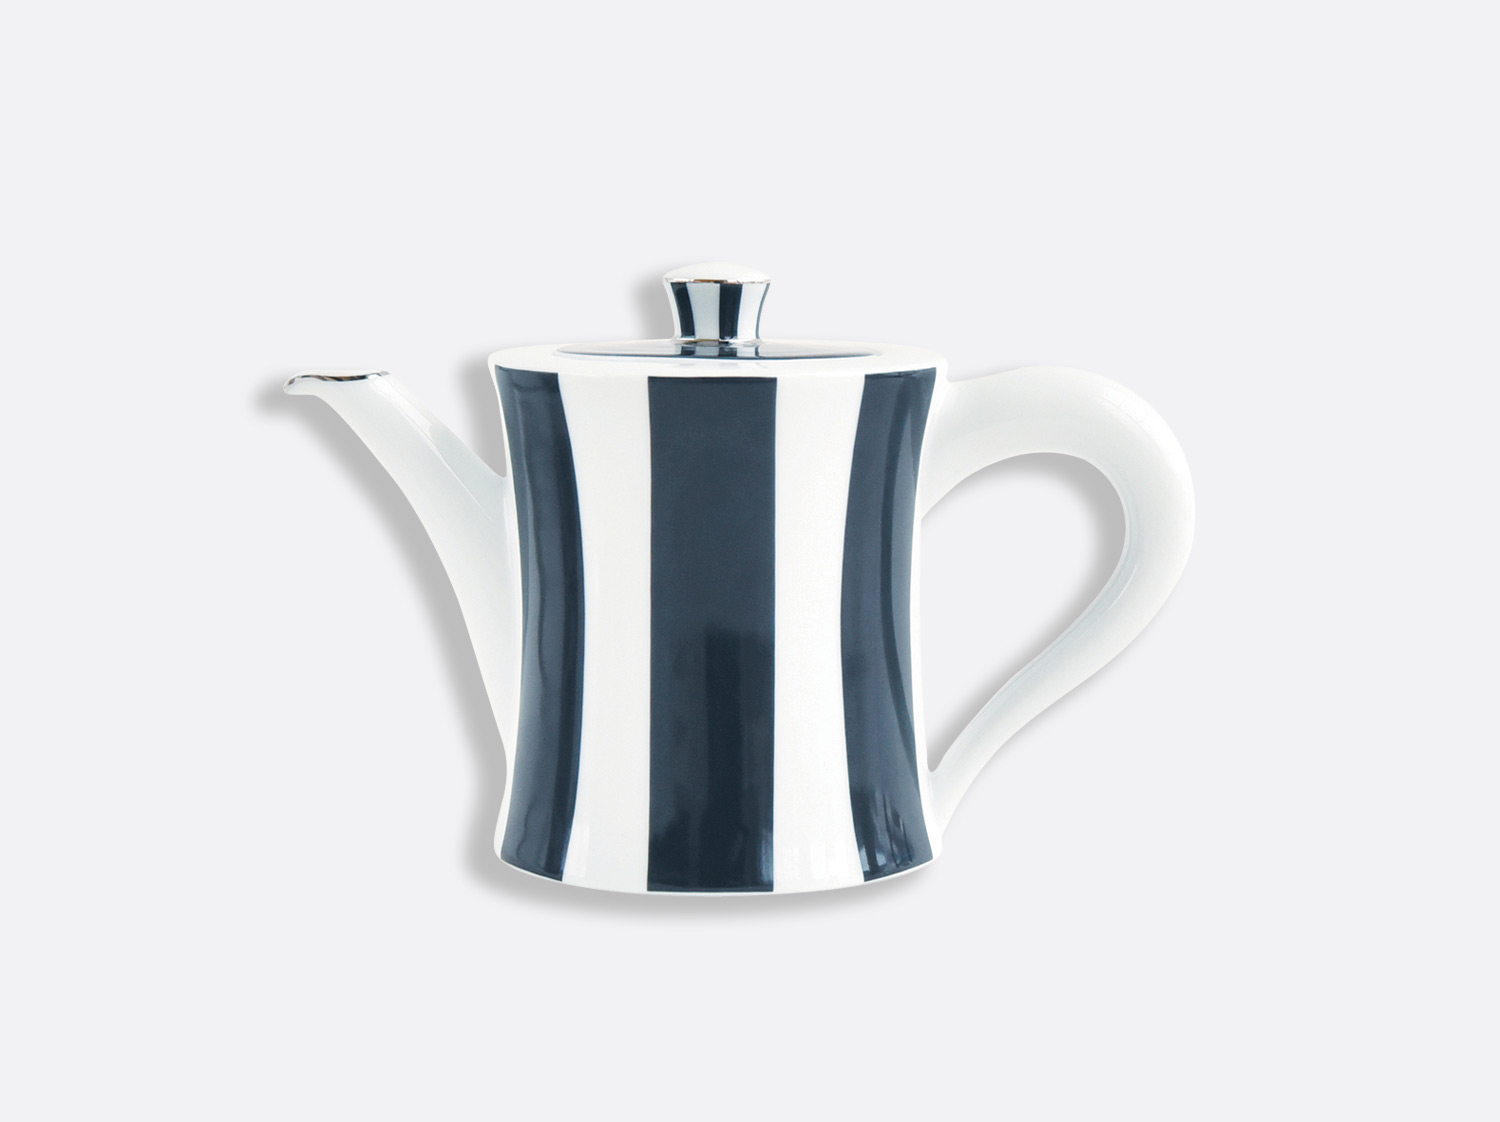 China Hot beverage server 13.5 oz of the collection Galerie Royale Bleu Nuit | Bernardaud